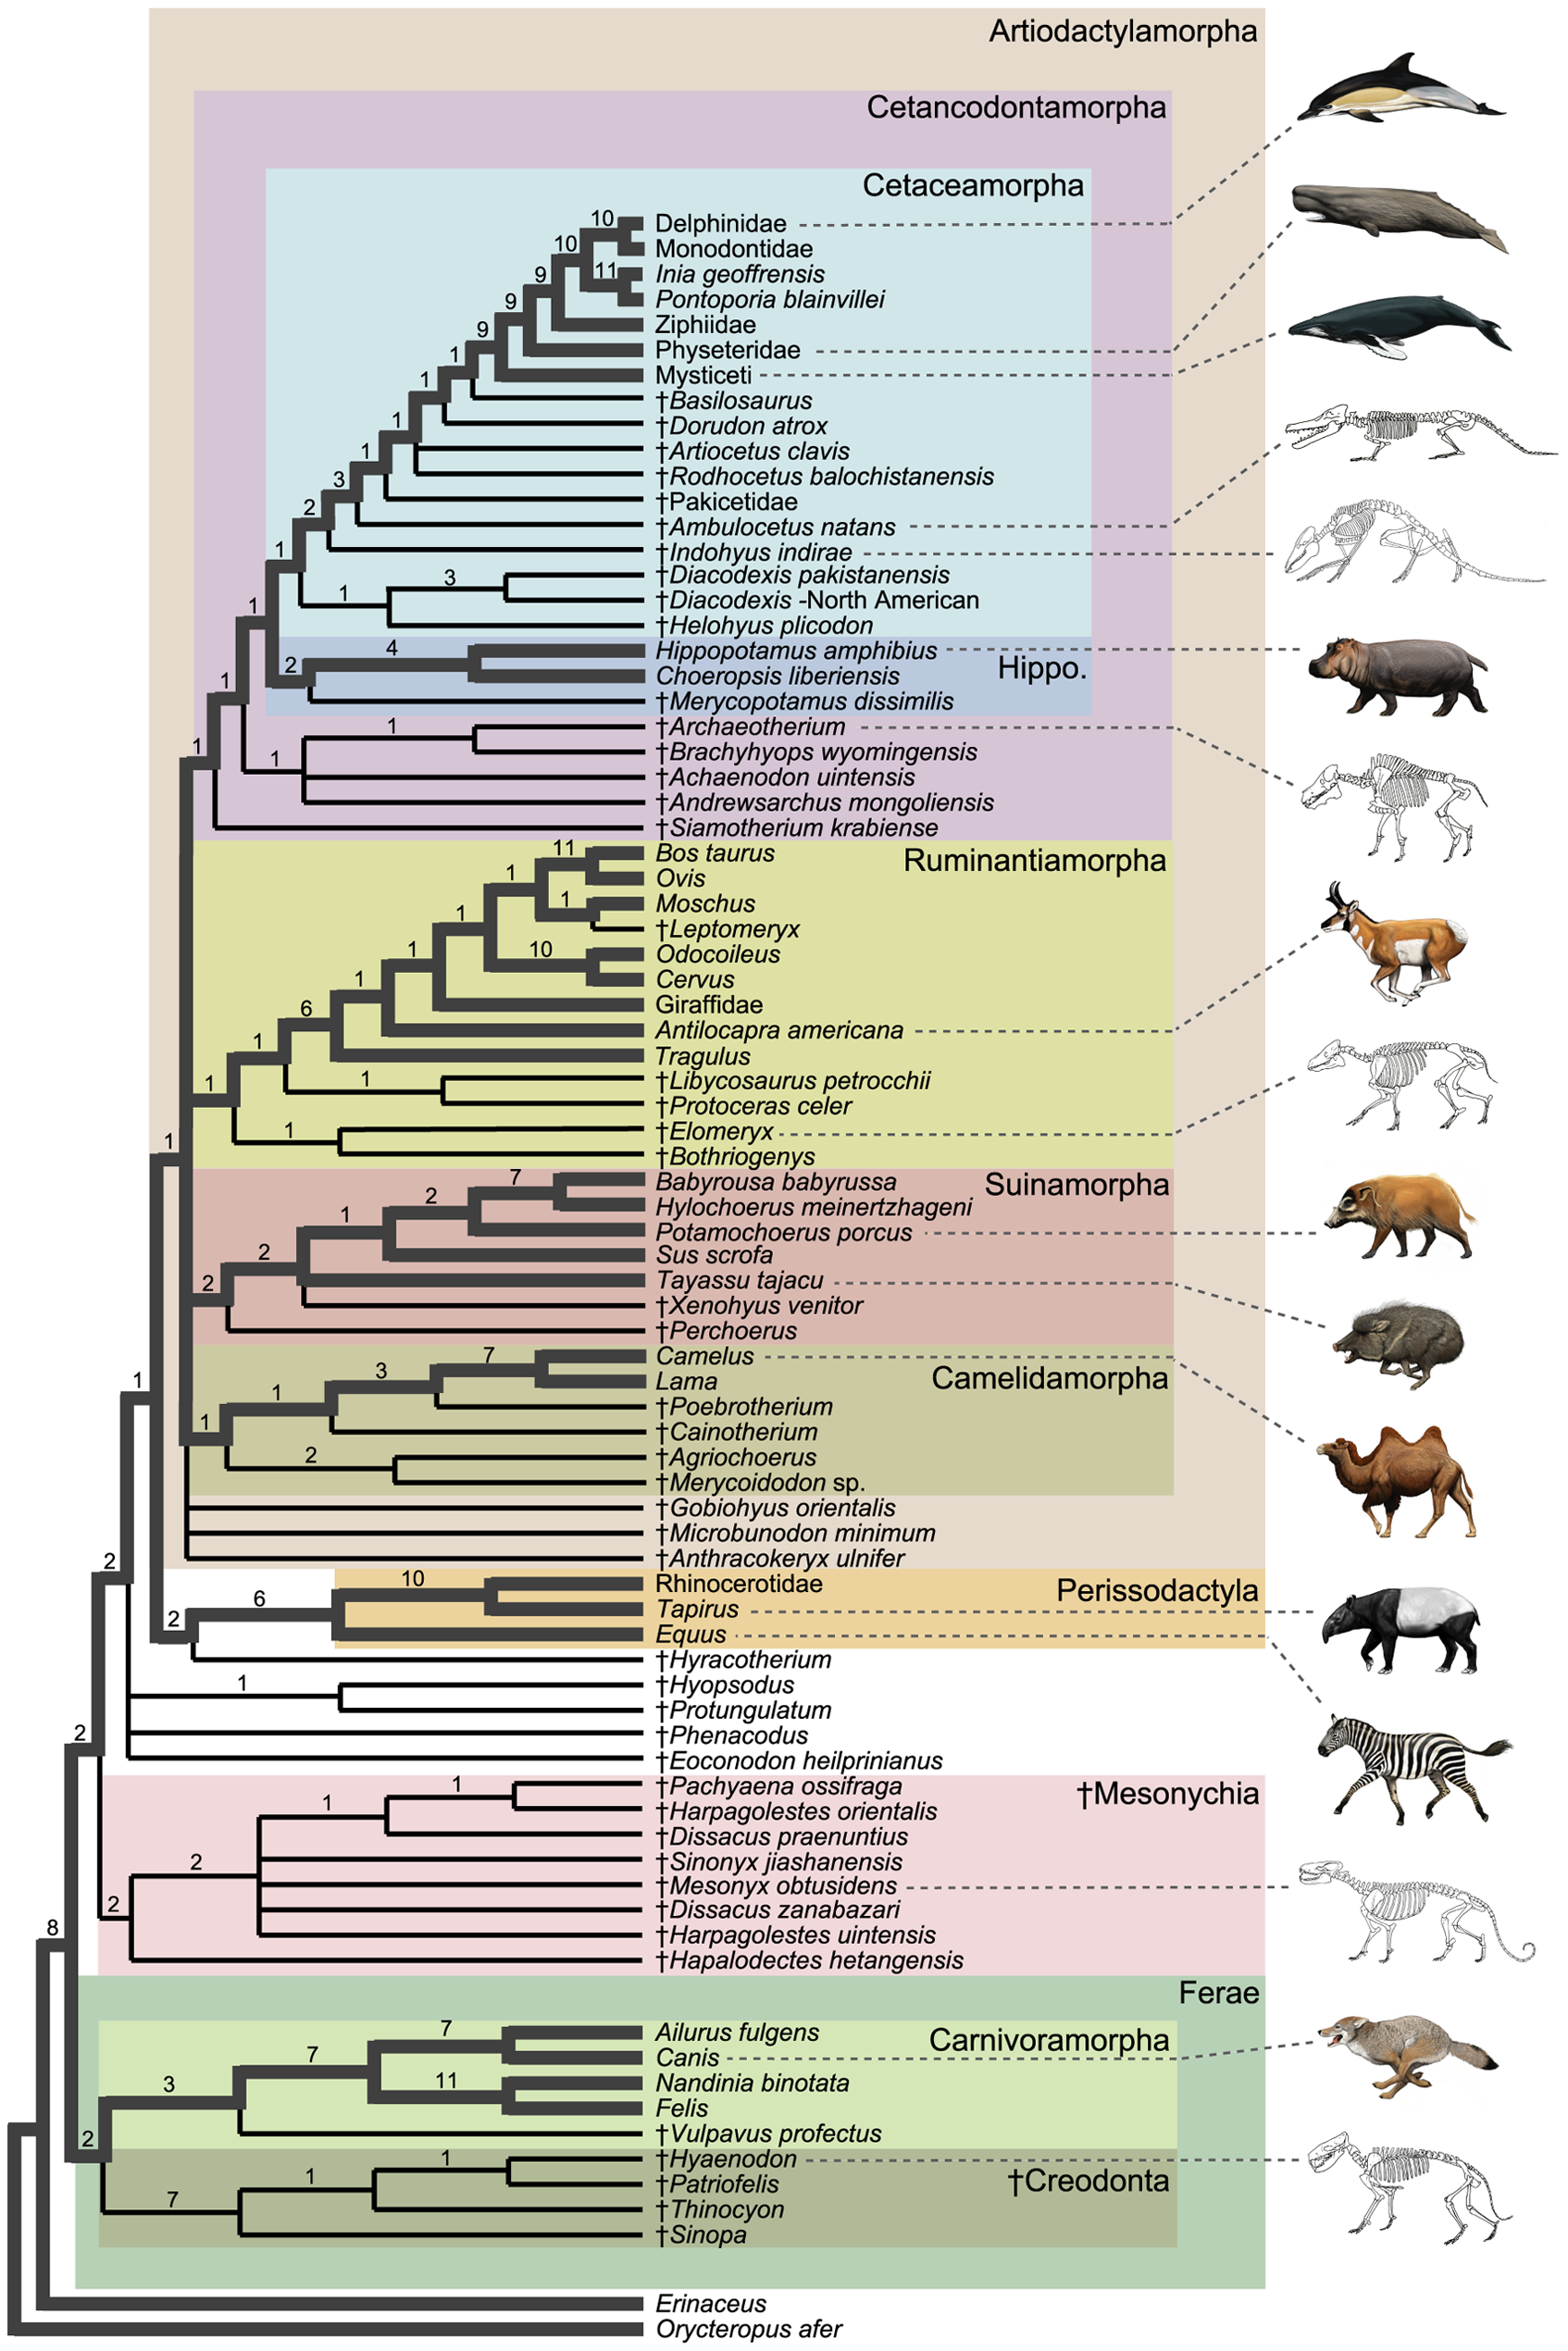 Convergent Evolution Cladogram Convergent Evolution.gif